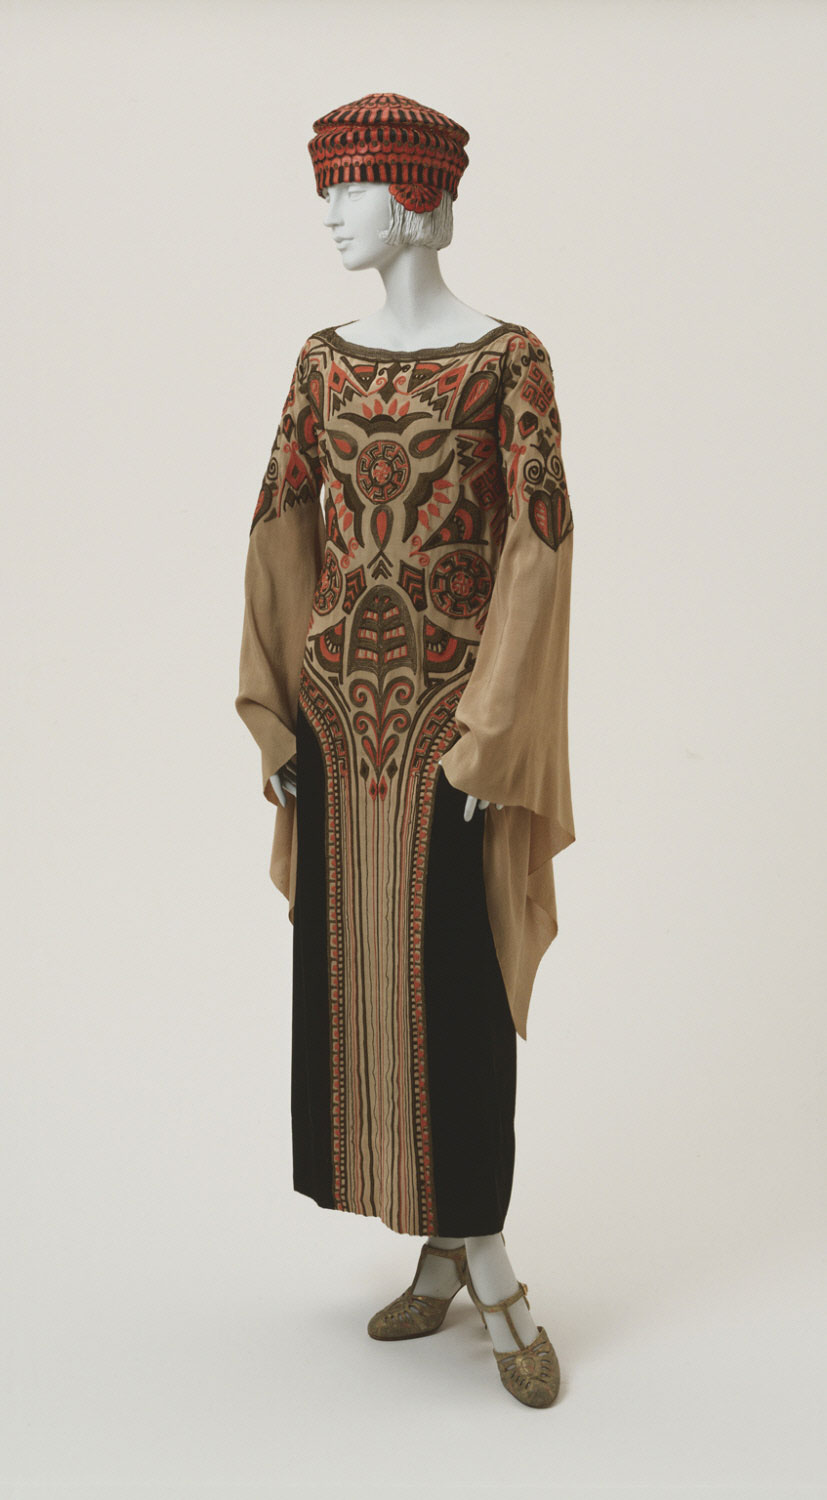 Collections Object : Woman's Afternoon Dress and Hat